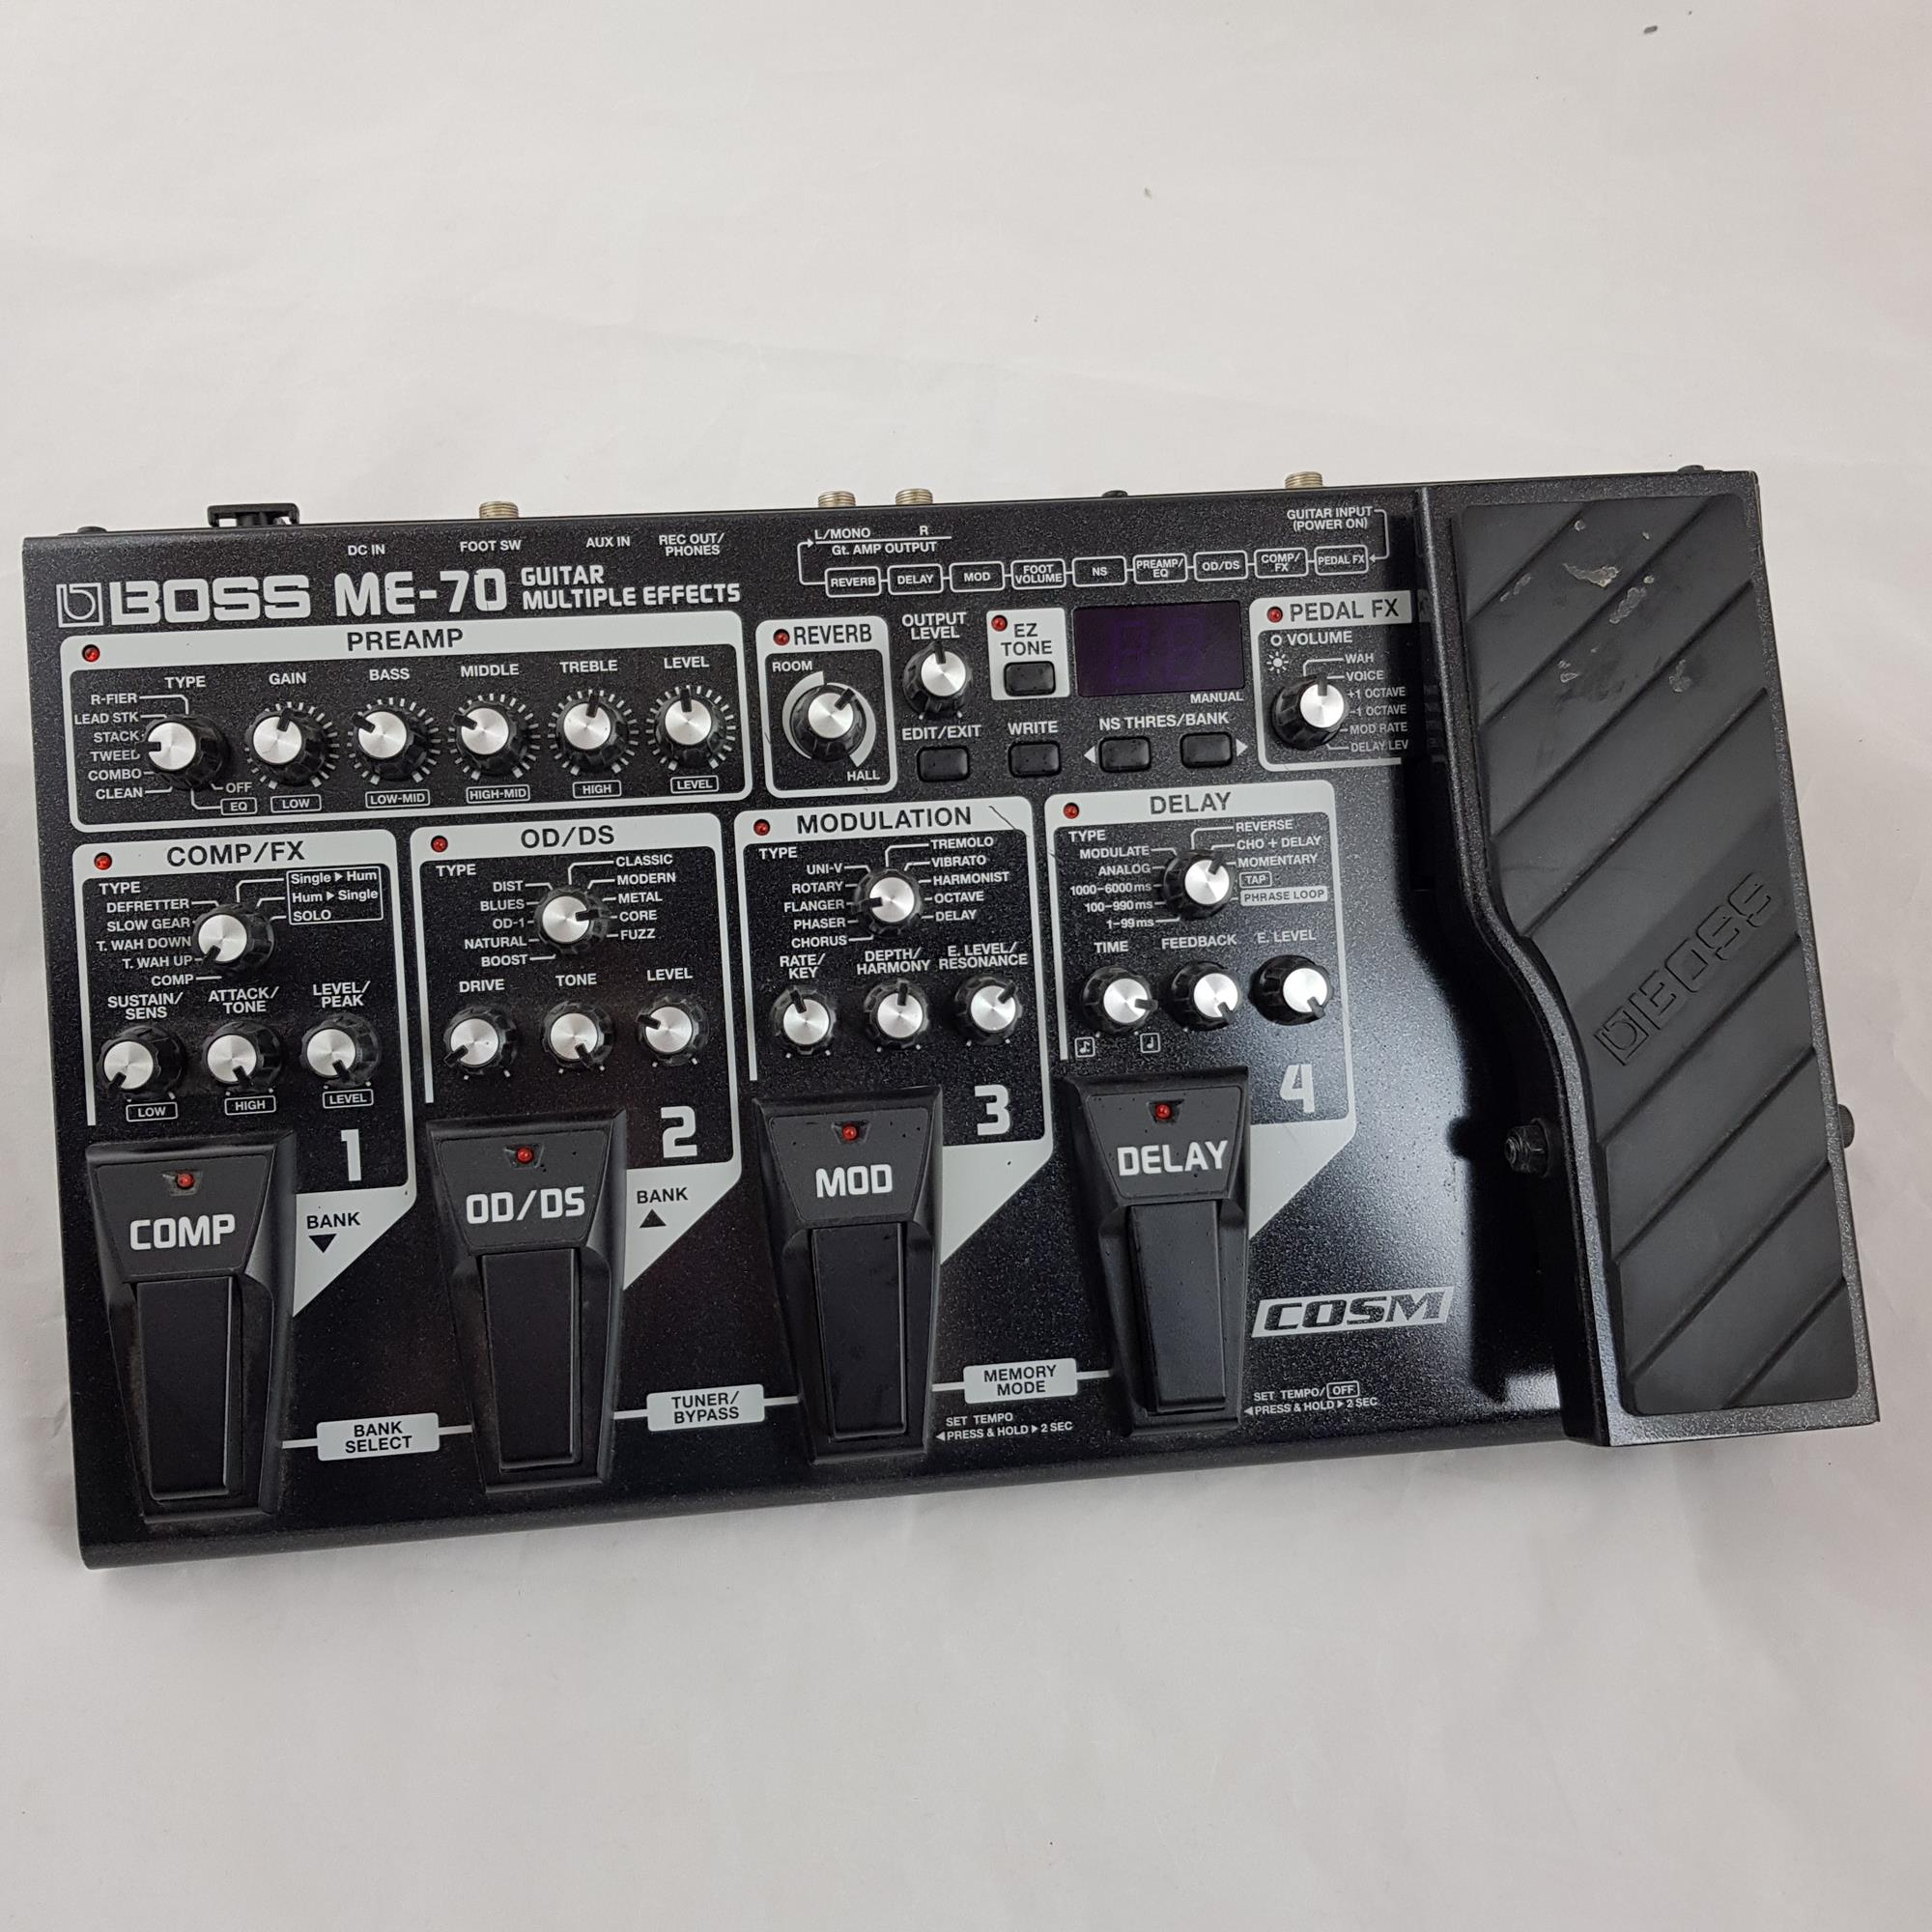 BOSS-ME-70-MULTI-EFFECTS-sku-1610994640912